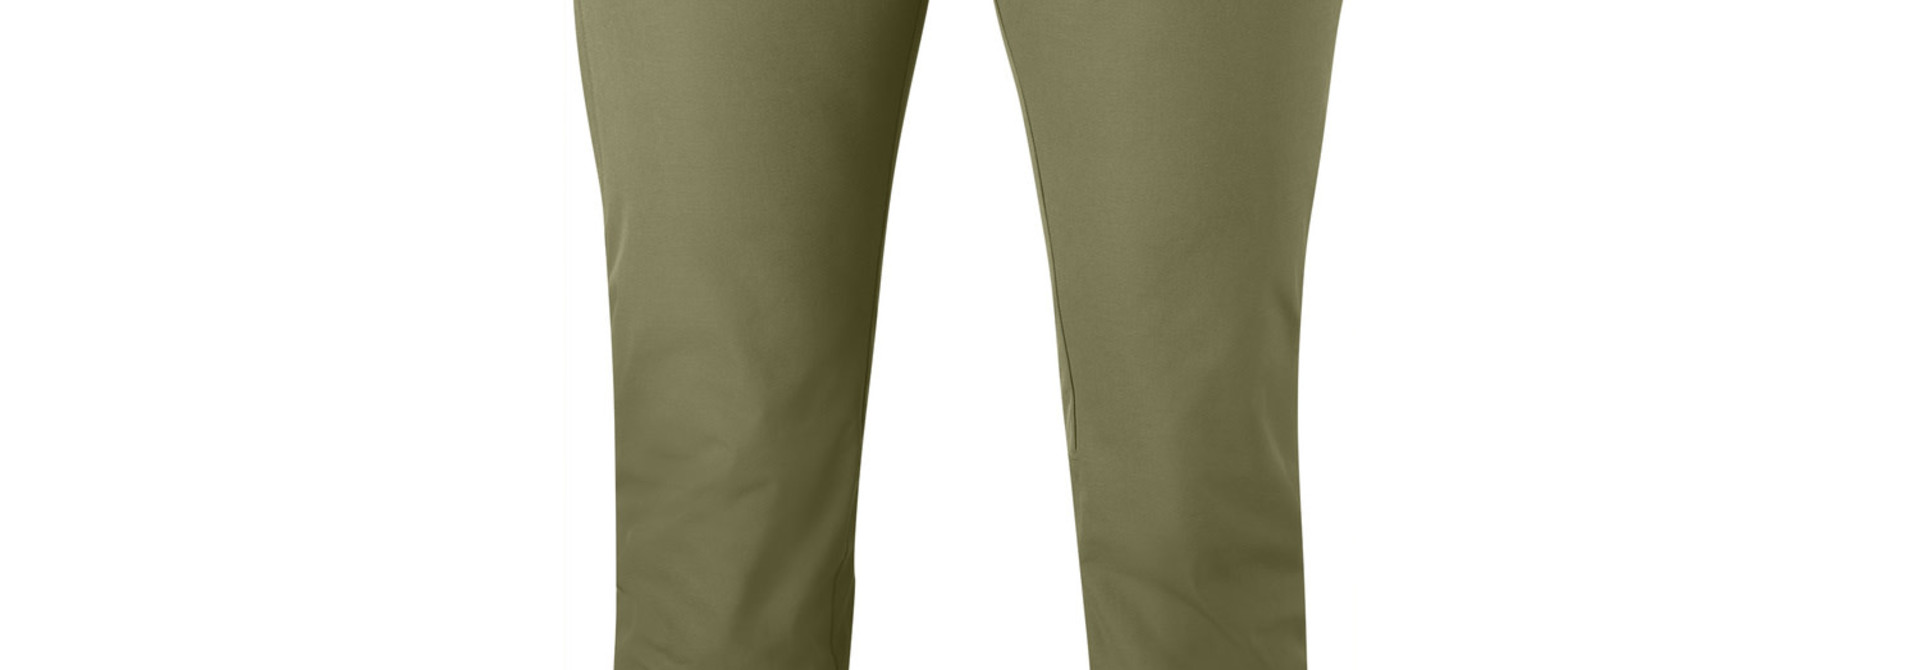 Fjällräven Abisko Stretch Trousers W Savanna